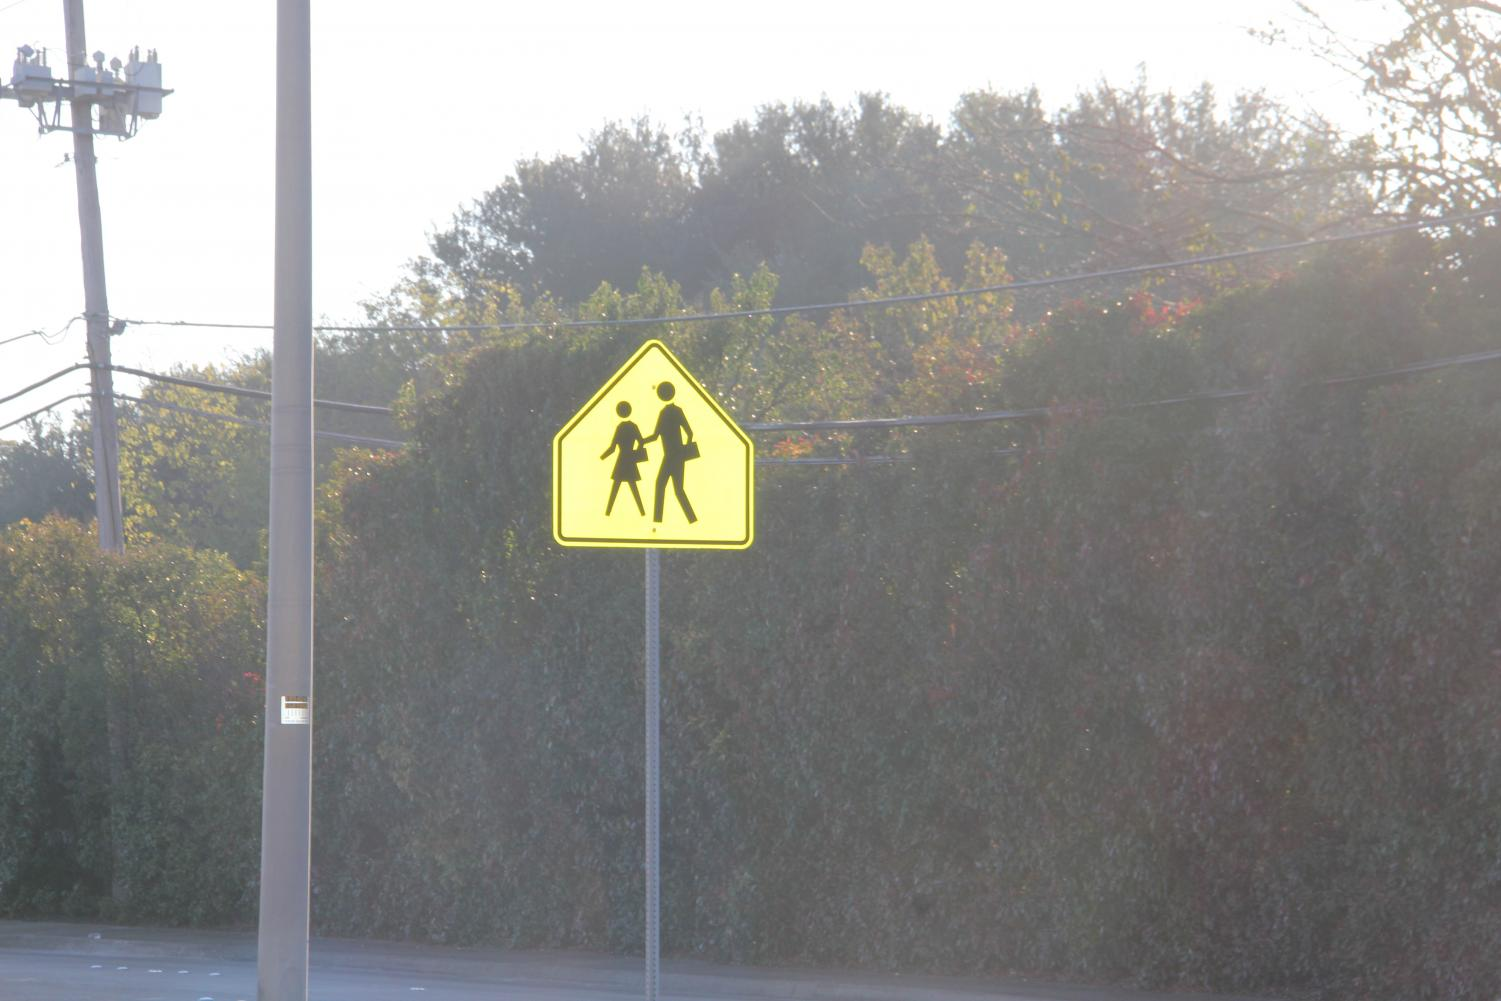 A yield to pedestrians sign next to a busy street gone ignored or unnoticed by many drivers.